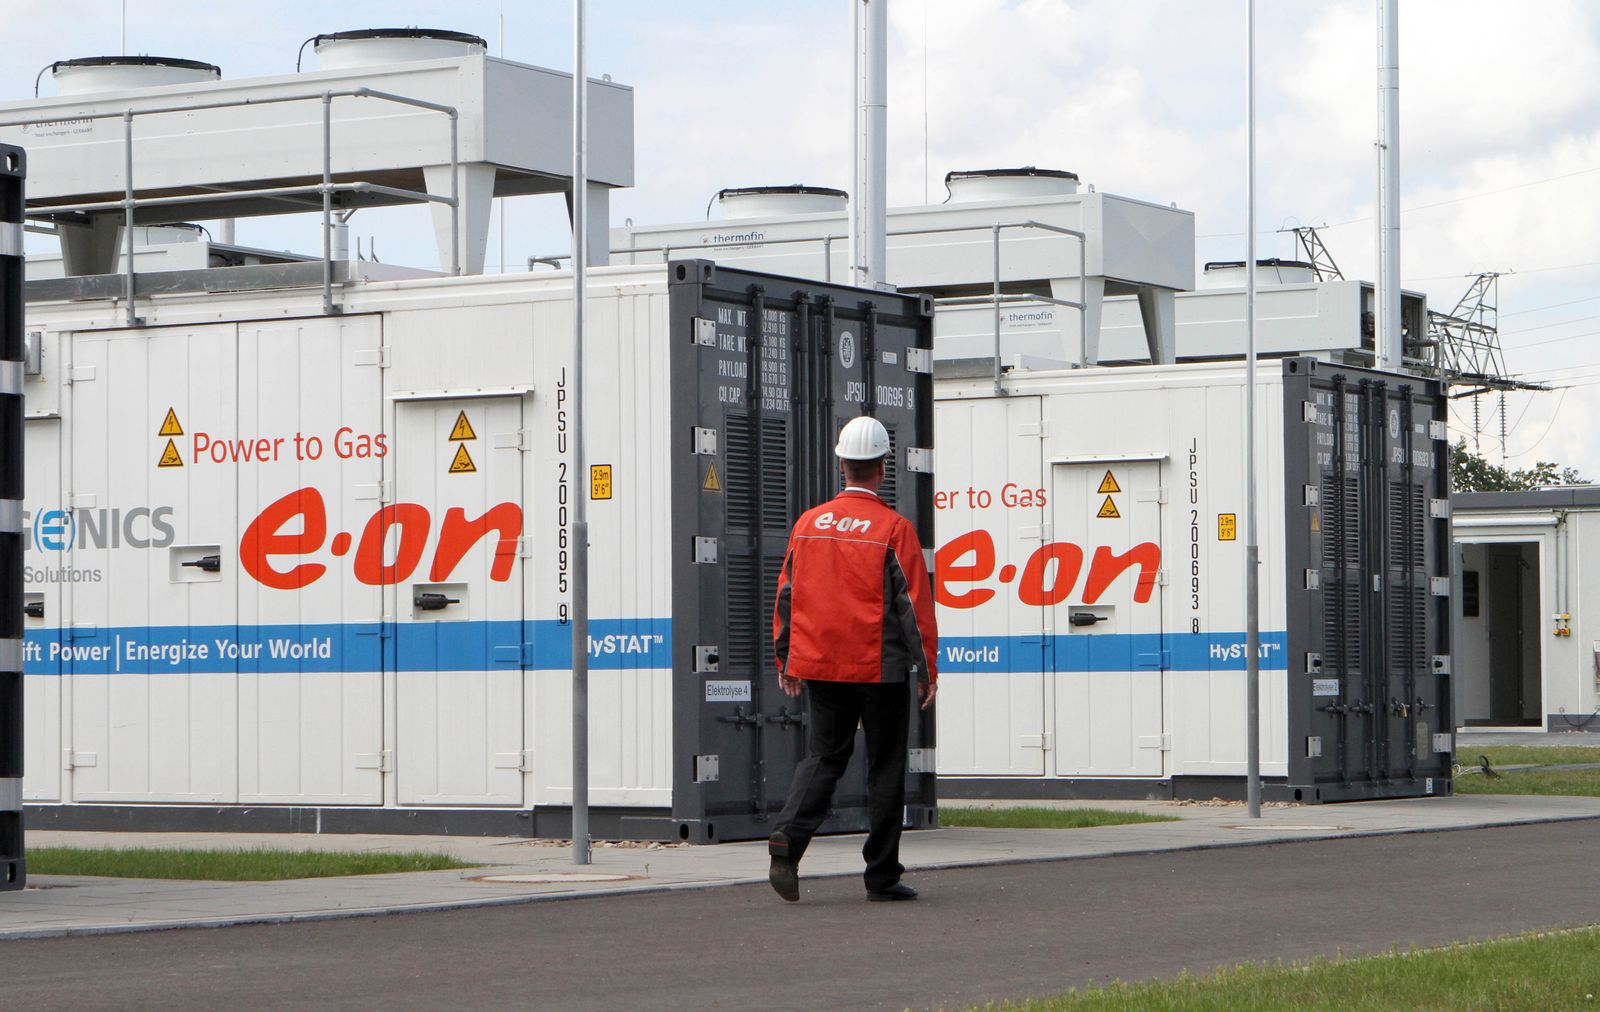 Alternativen zu Erdgas/ Power-to-Gas-Anlage